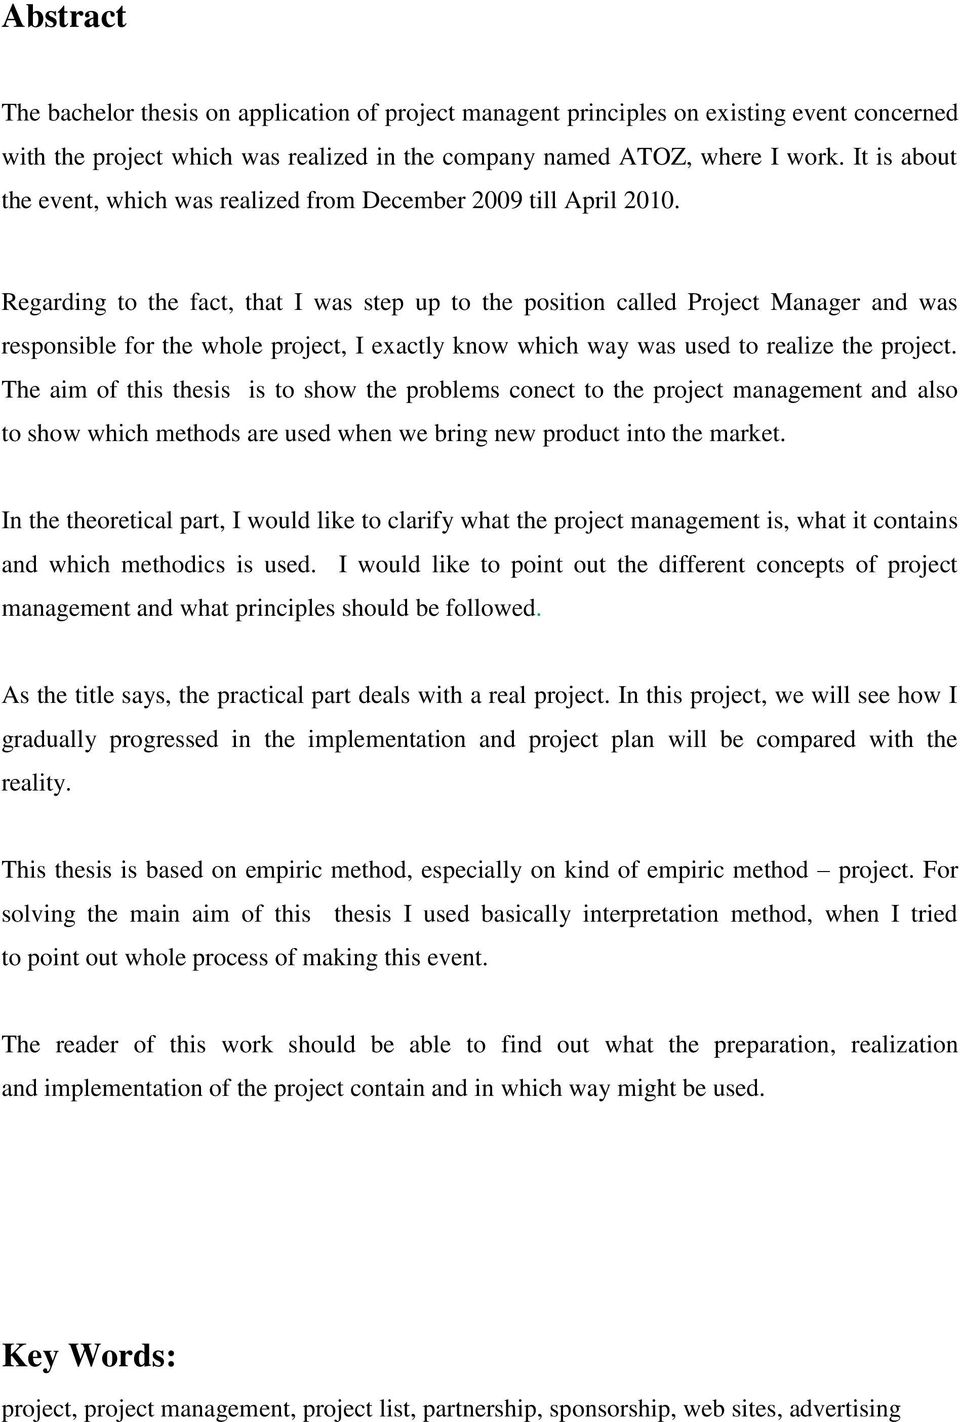 Regarding to the fact, that I was step up to the position called Project Manager and was responsible for the whole project, I exactly know which way was used to realize the project.